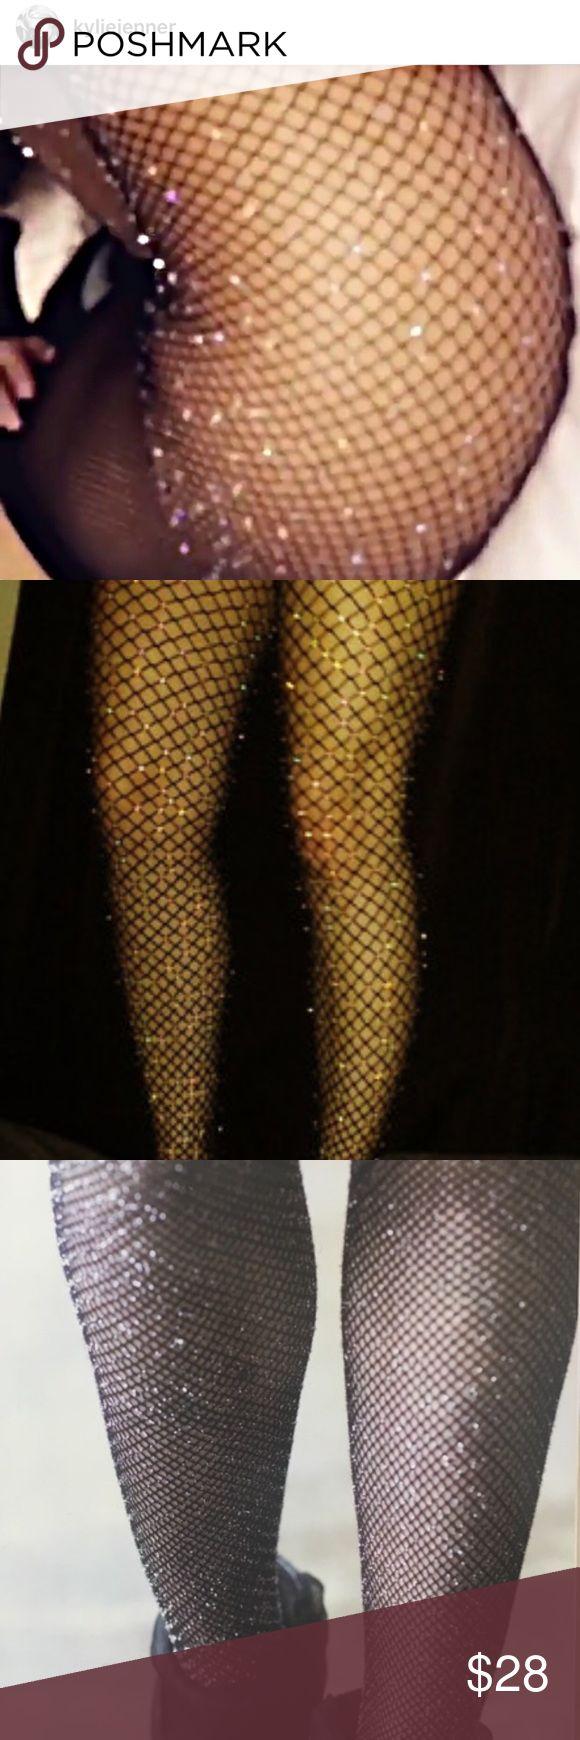 Kylie Jenner Glitter Sparkle Nylon Fishnet Tights  Kylie Jenner Glitter Sparkle Nylon Fishnet Tights. With feet. Not leggings. These are nylon fishnet tights/stockings. NWOT. These are fishnet with glitter sparkles. In the color black. ❤️ The size runs true. Trend Alert !!! Please specify your size. Small or Medium. Yeezy Other